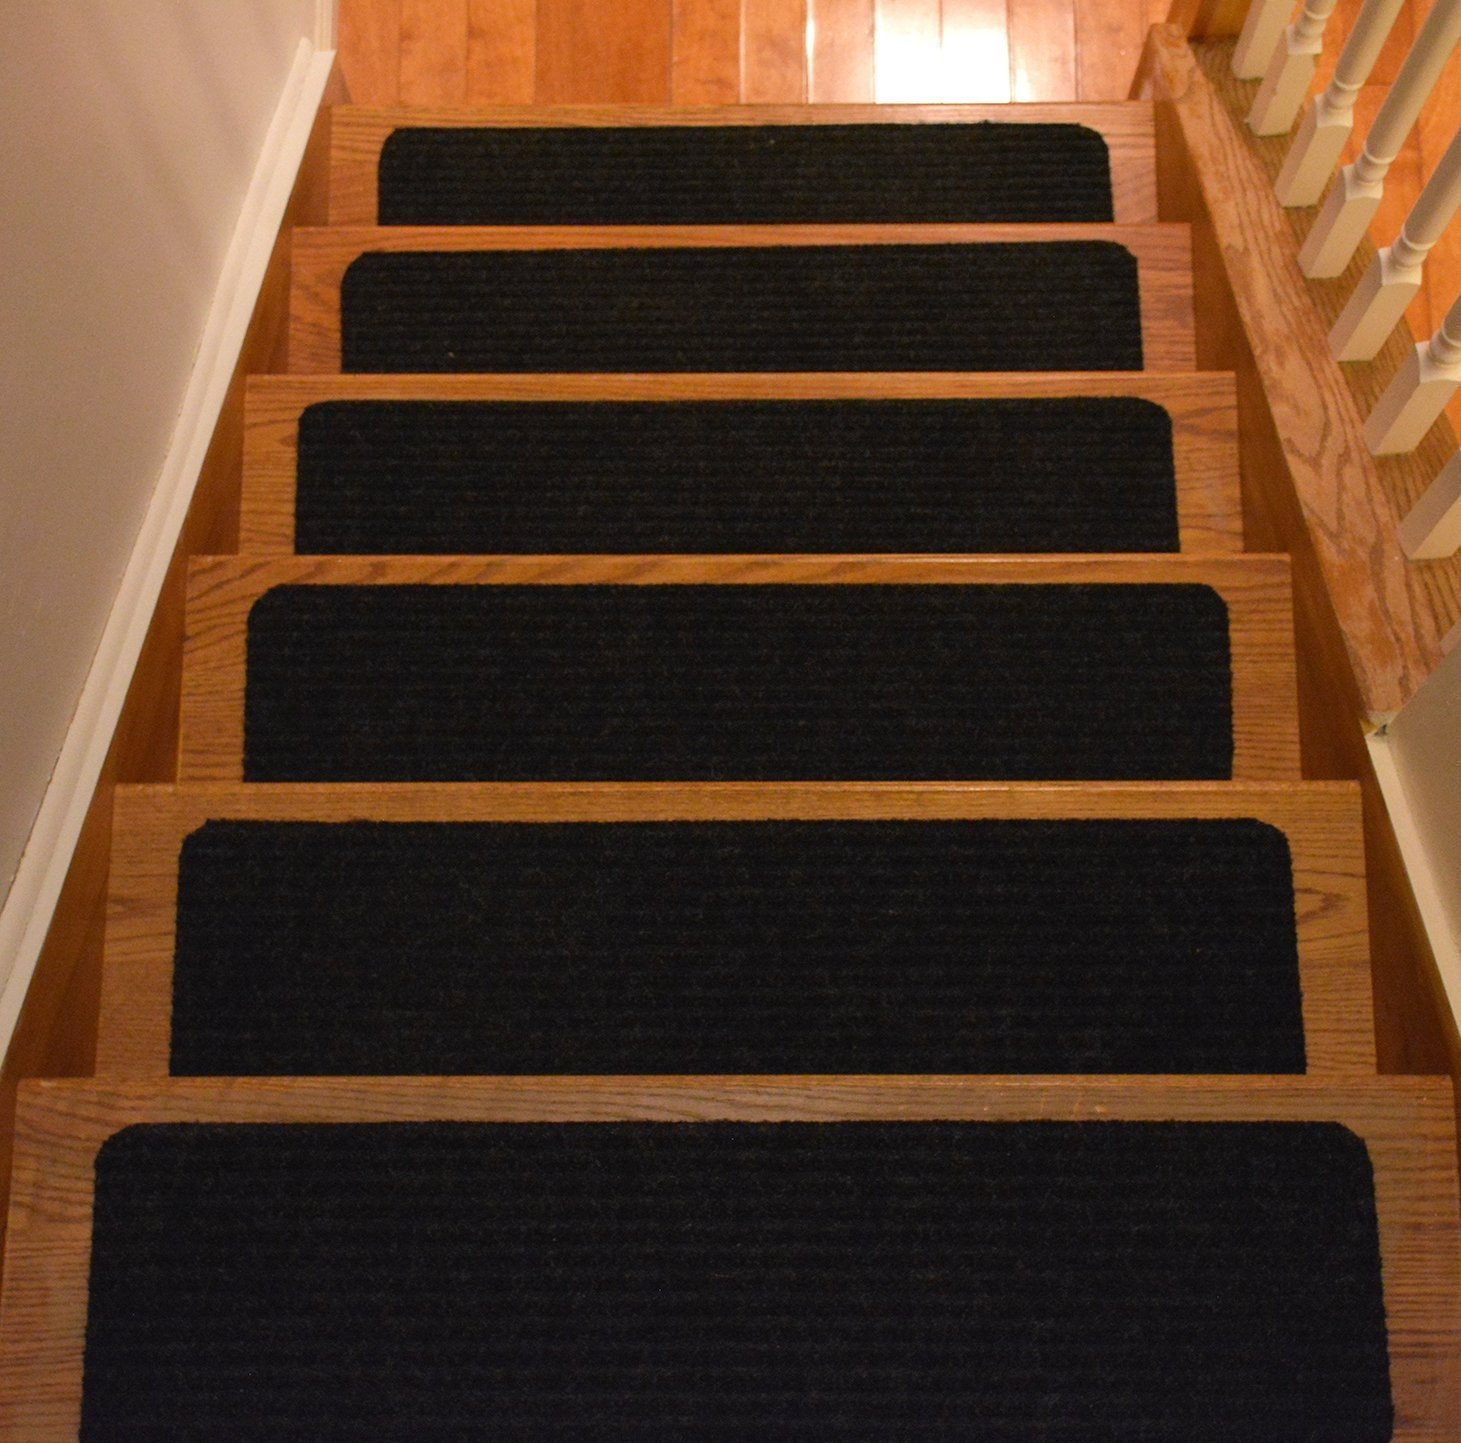 Flooring Pretty Stair Treads Carpet For Stair Decoration Idea Intended For Stair Tread Rug Sets (Image 7 of 15)